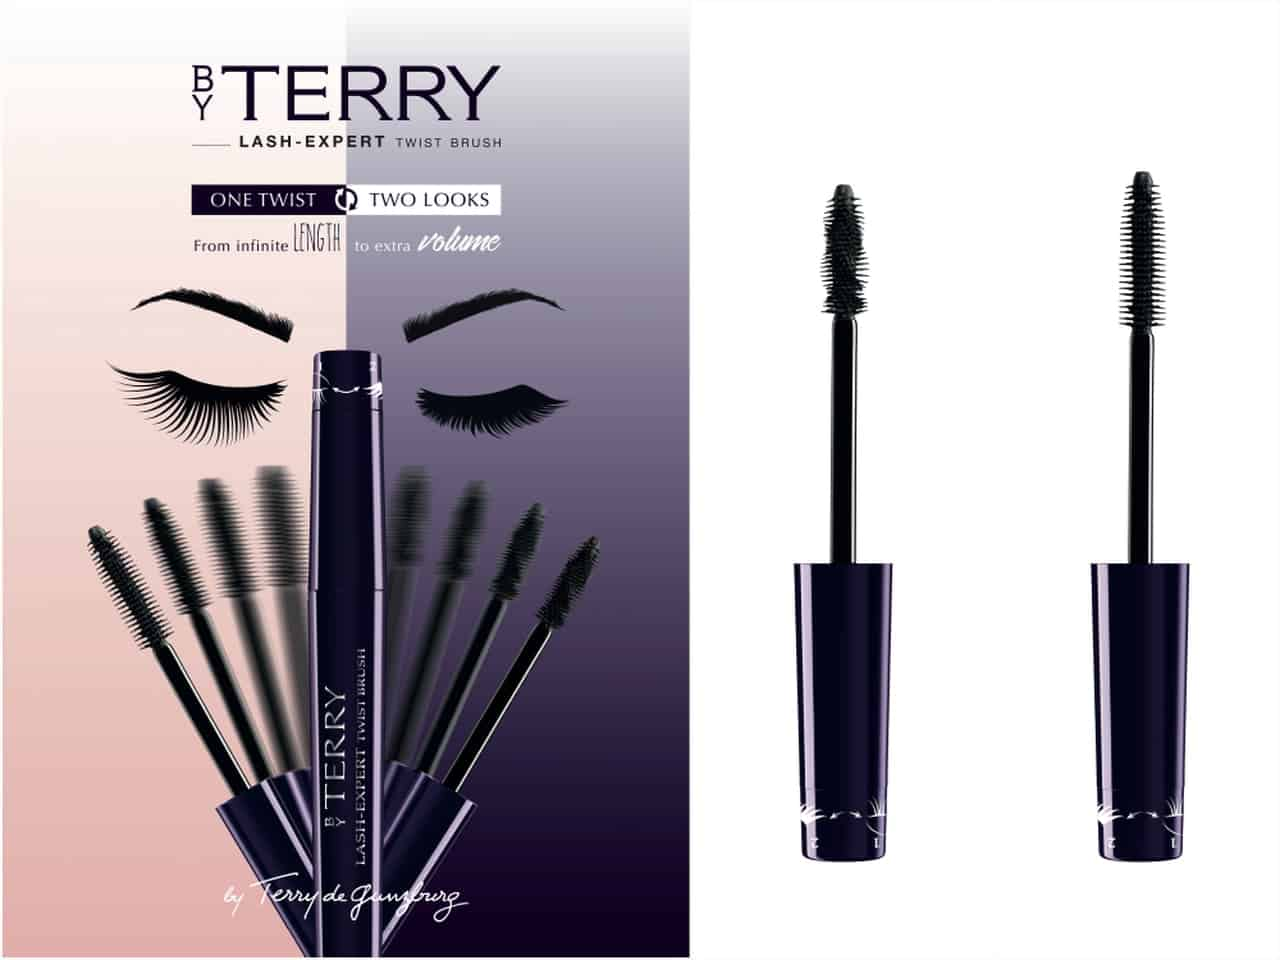 LASH EXPERT TWIST BRUSH By Terry